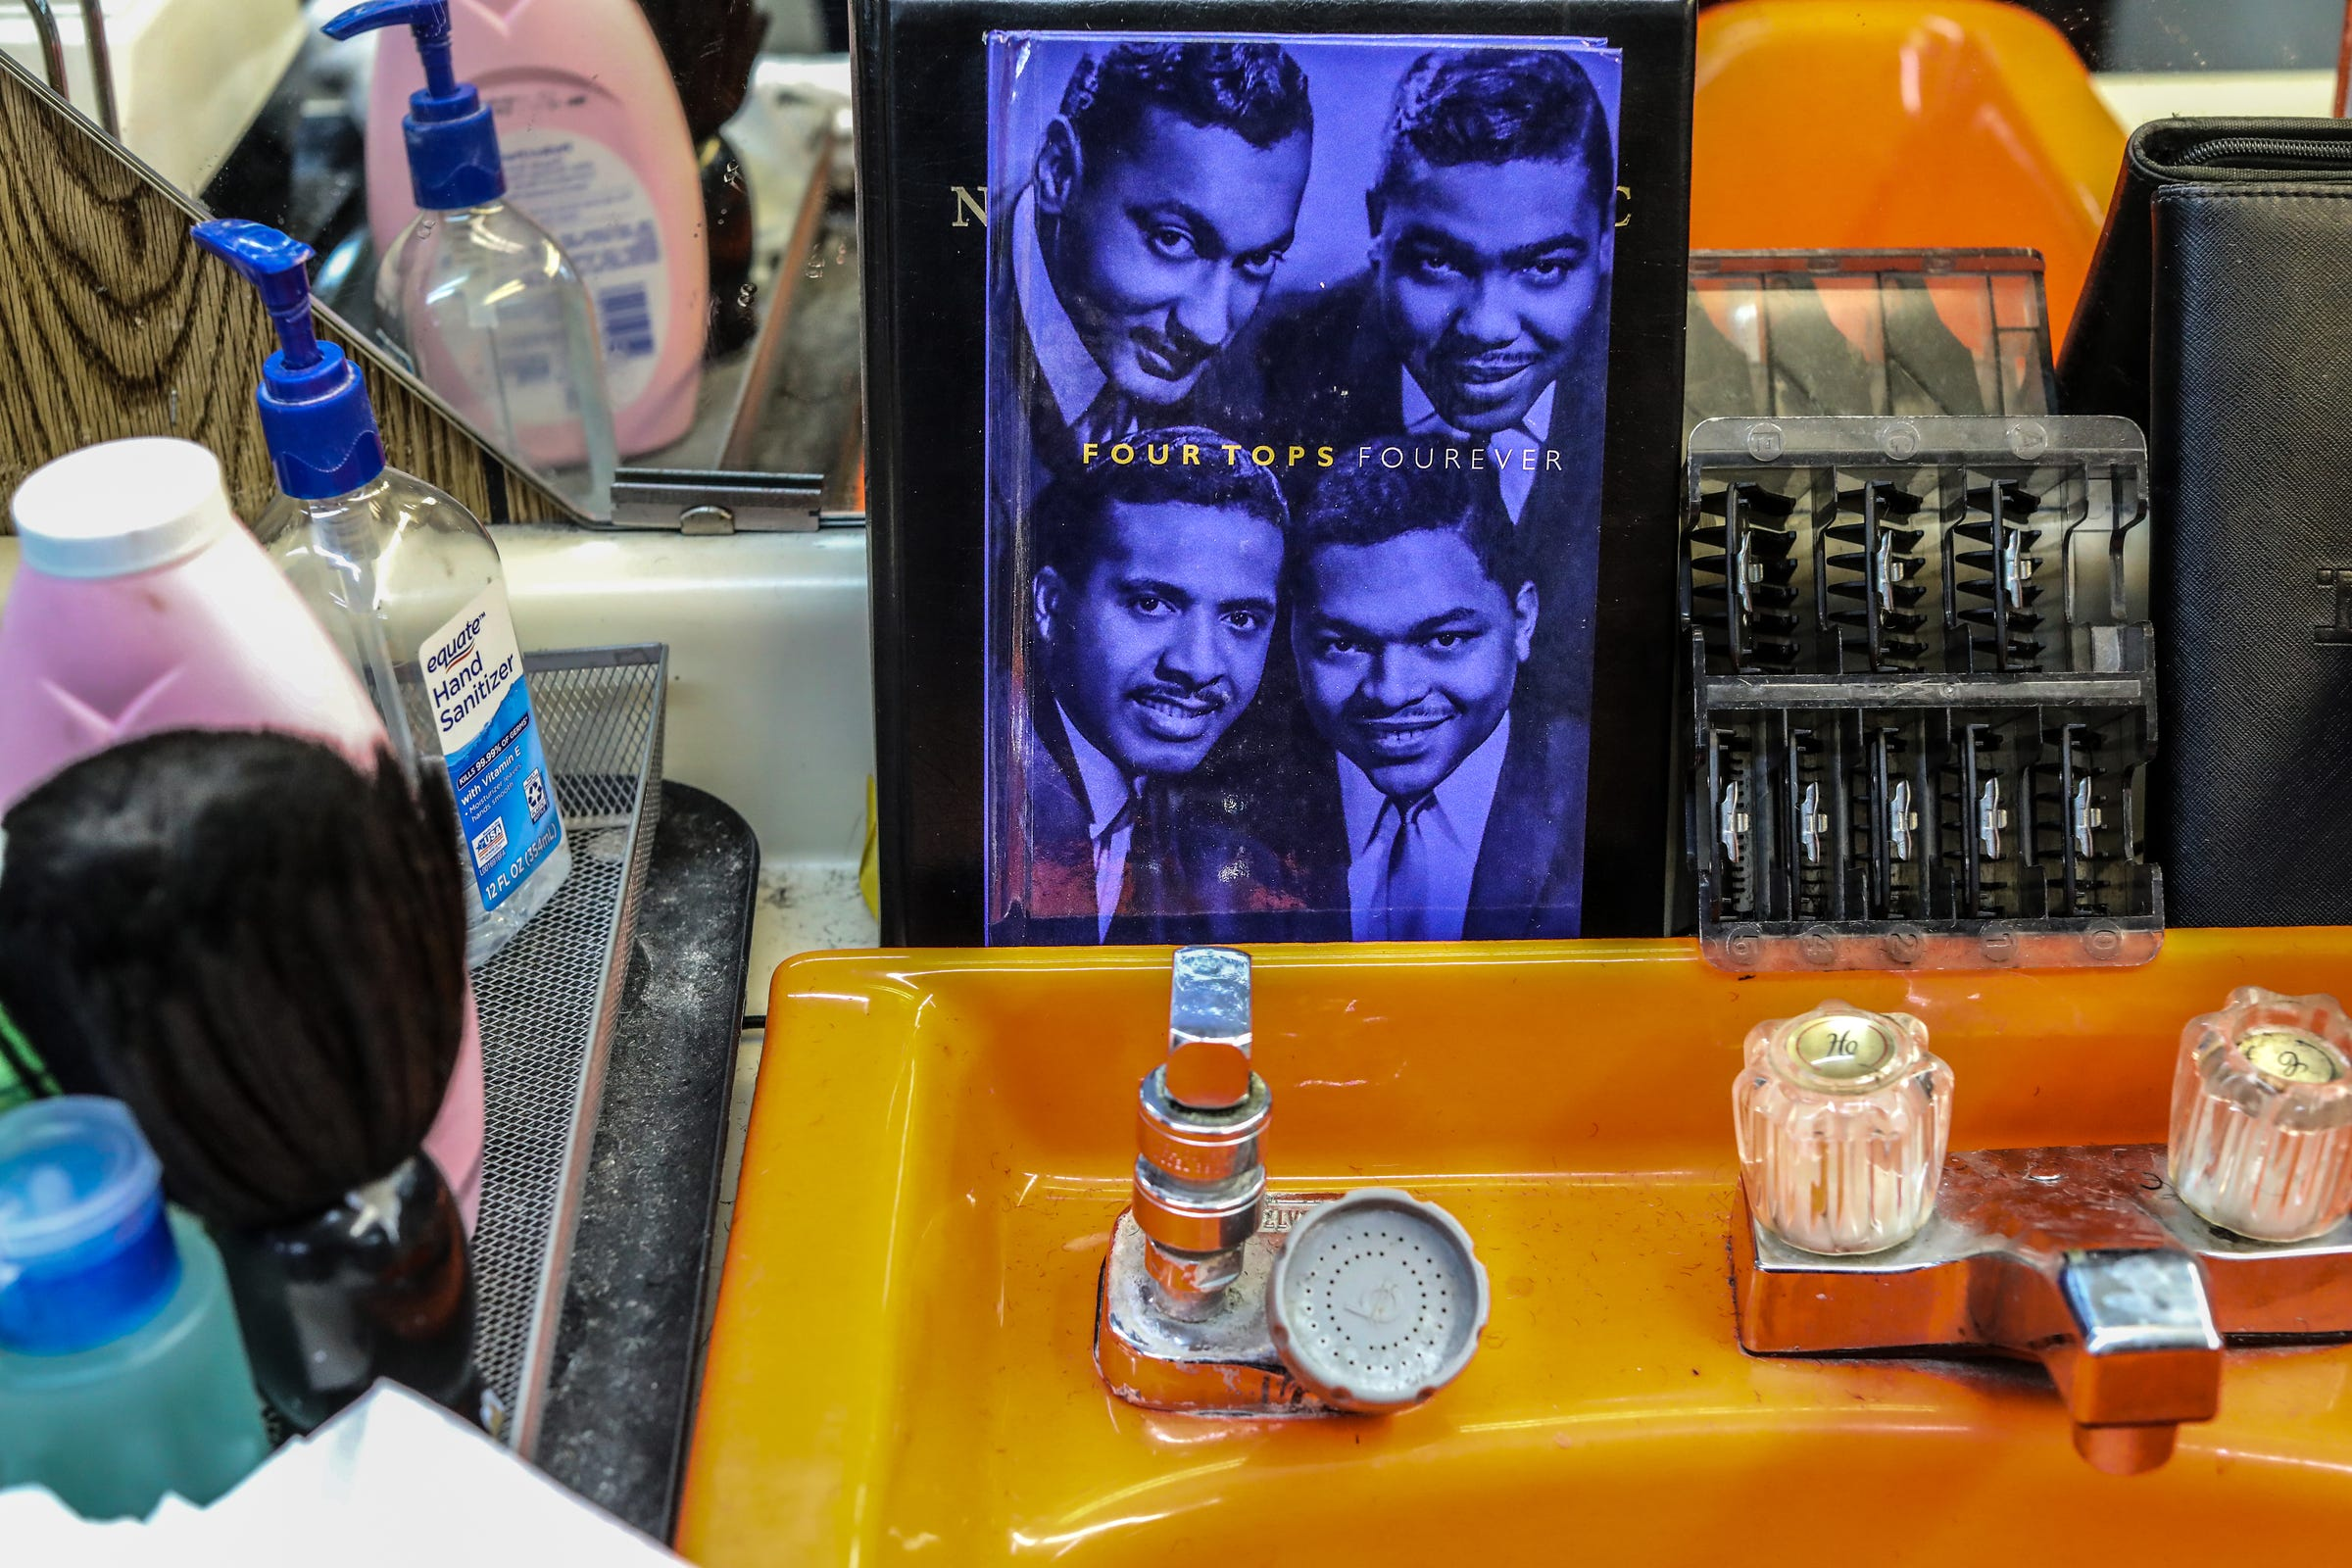 A book about the Motown group The Four Tops was given to Hobson ÒHoppyÓ Colvin, who has cut hair in Detroit for 58 years, including many clients that obtained stardom through music like the Four Tops at Big D's Barber and Unisex Salon in Detroit, photographed on Wednesday, March 11, 2020.